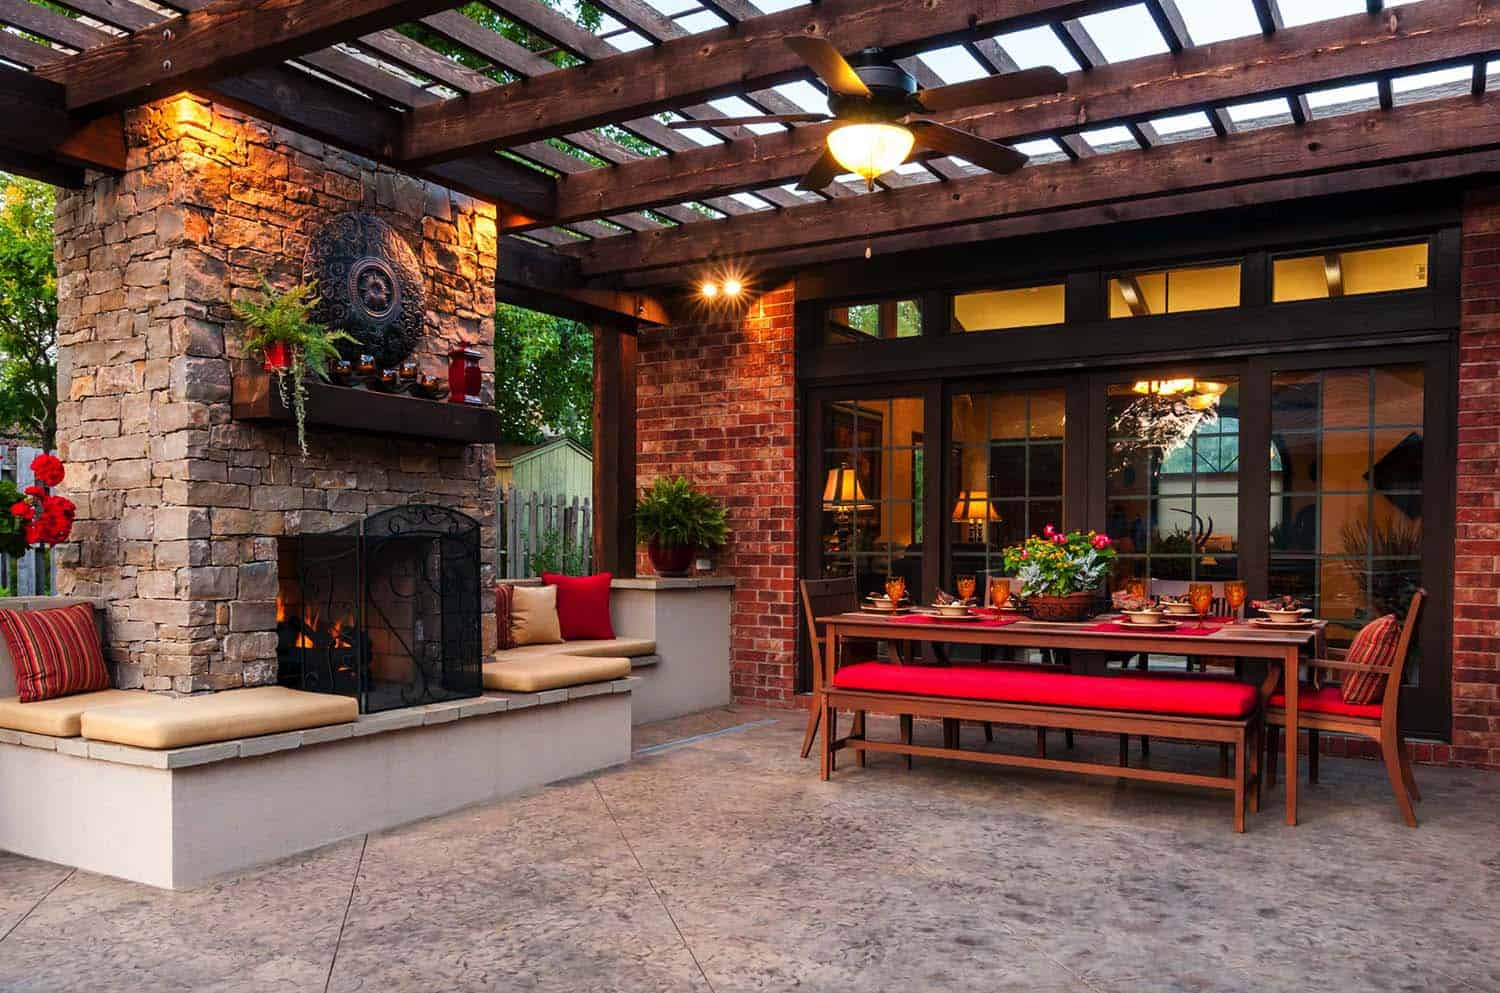 30+ Irresistible outdoor fireplace ideas that will leave ... on Outdoor Kitchen And Fireplace Ideas id=19690